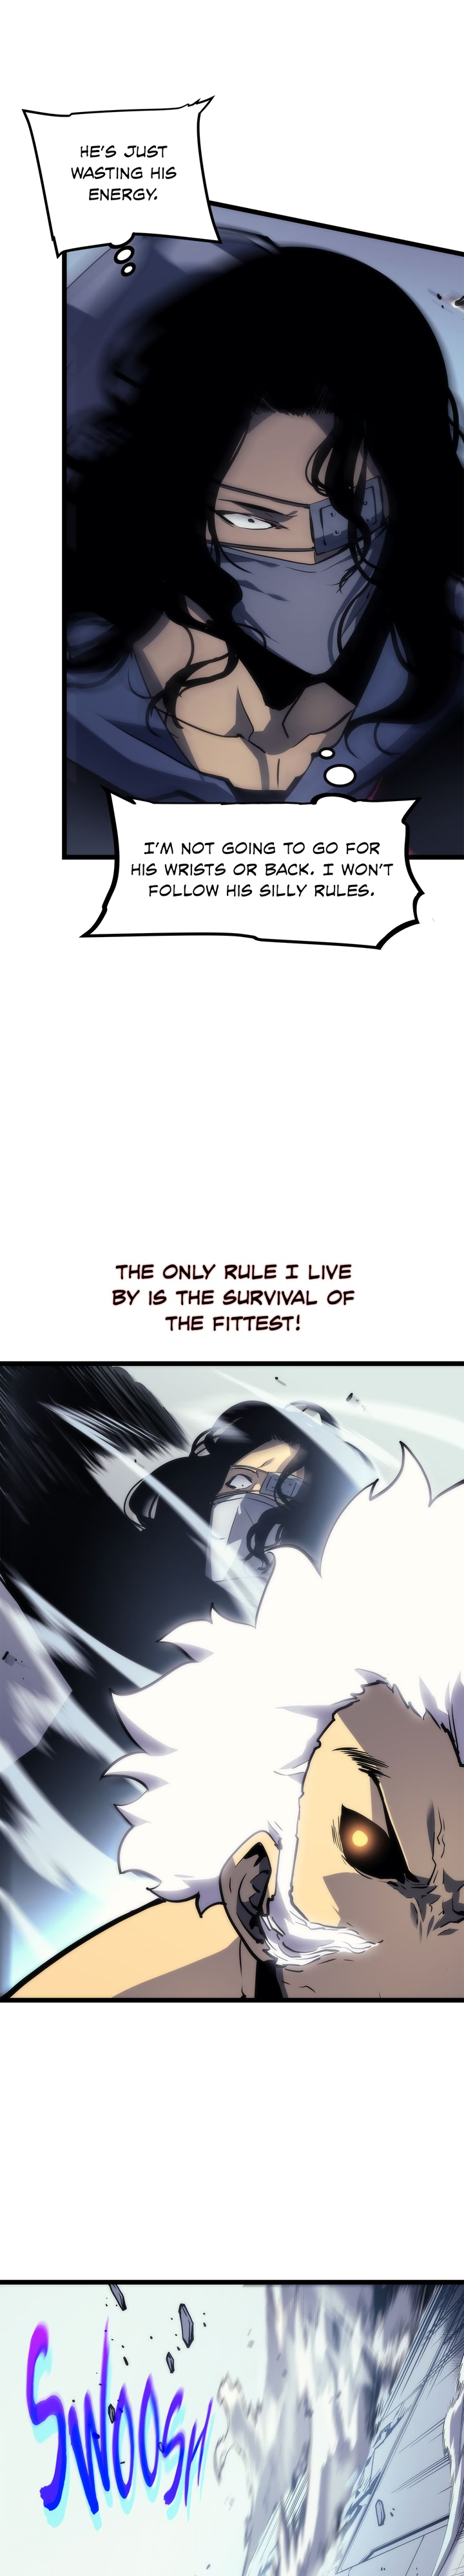 Solo Leveling, Chapter 92 image 012